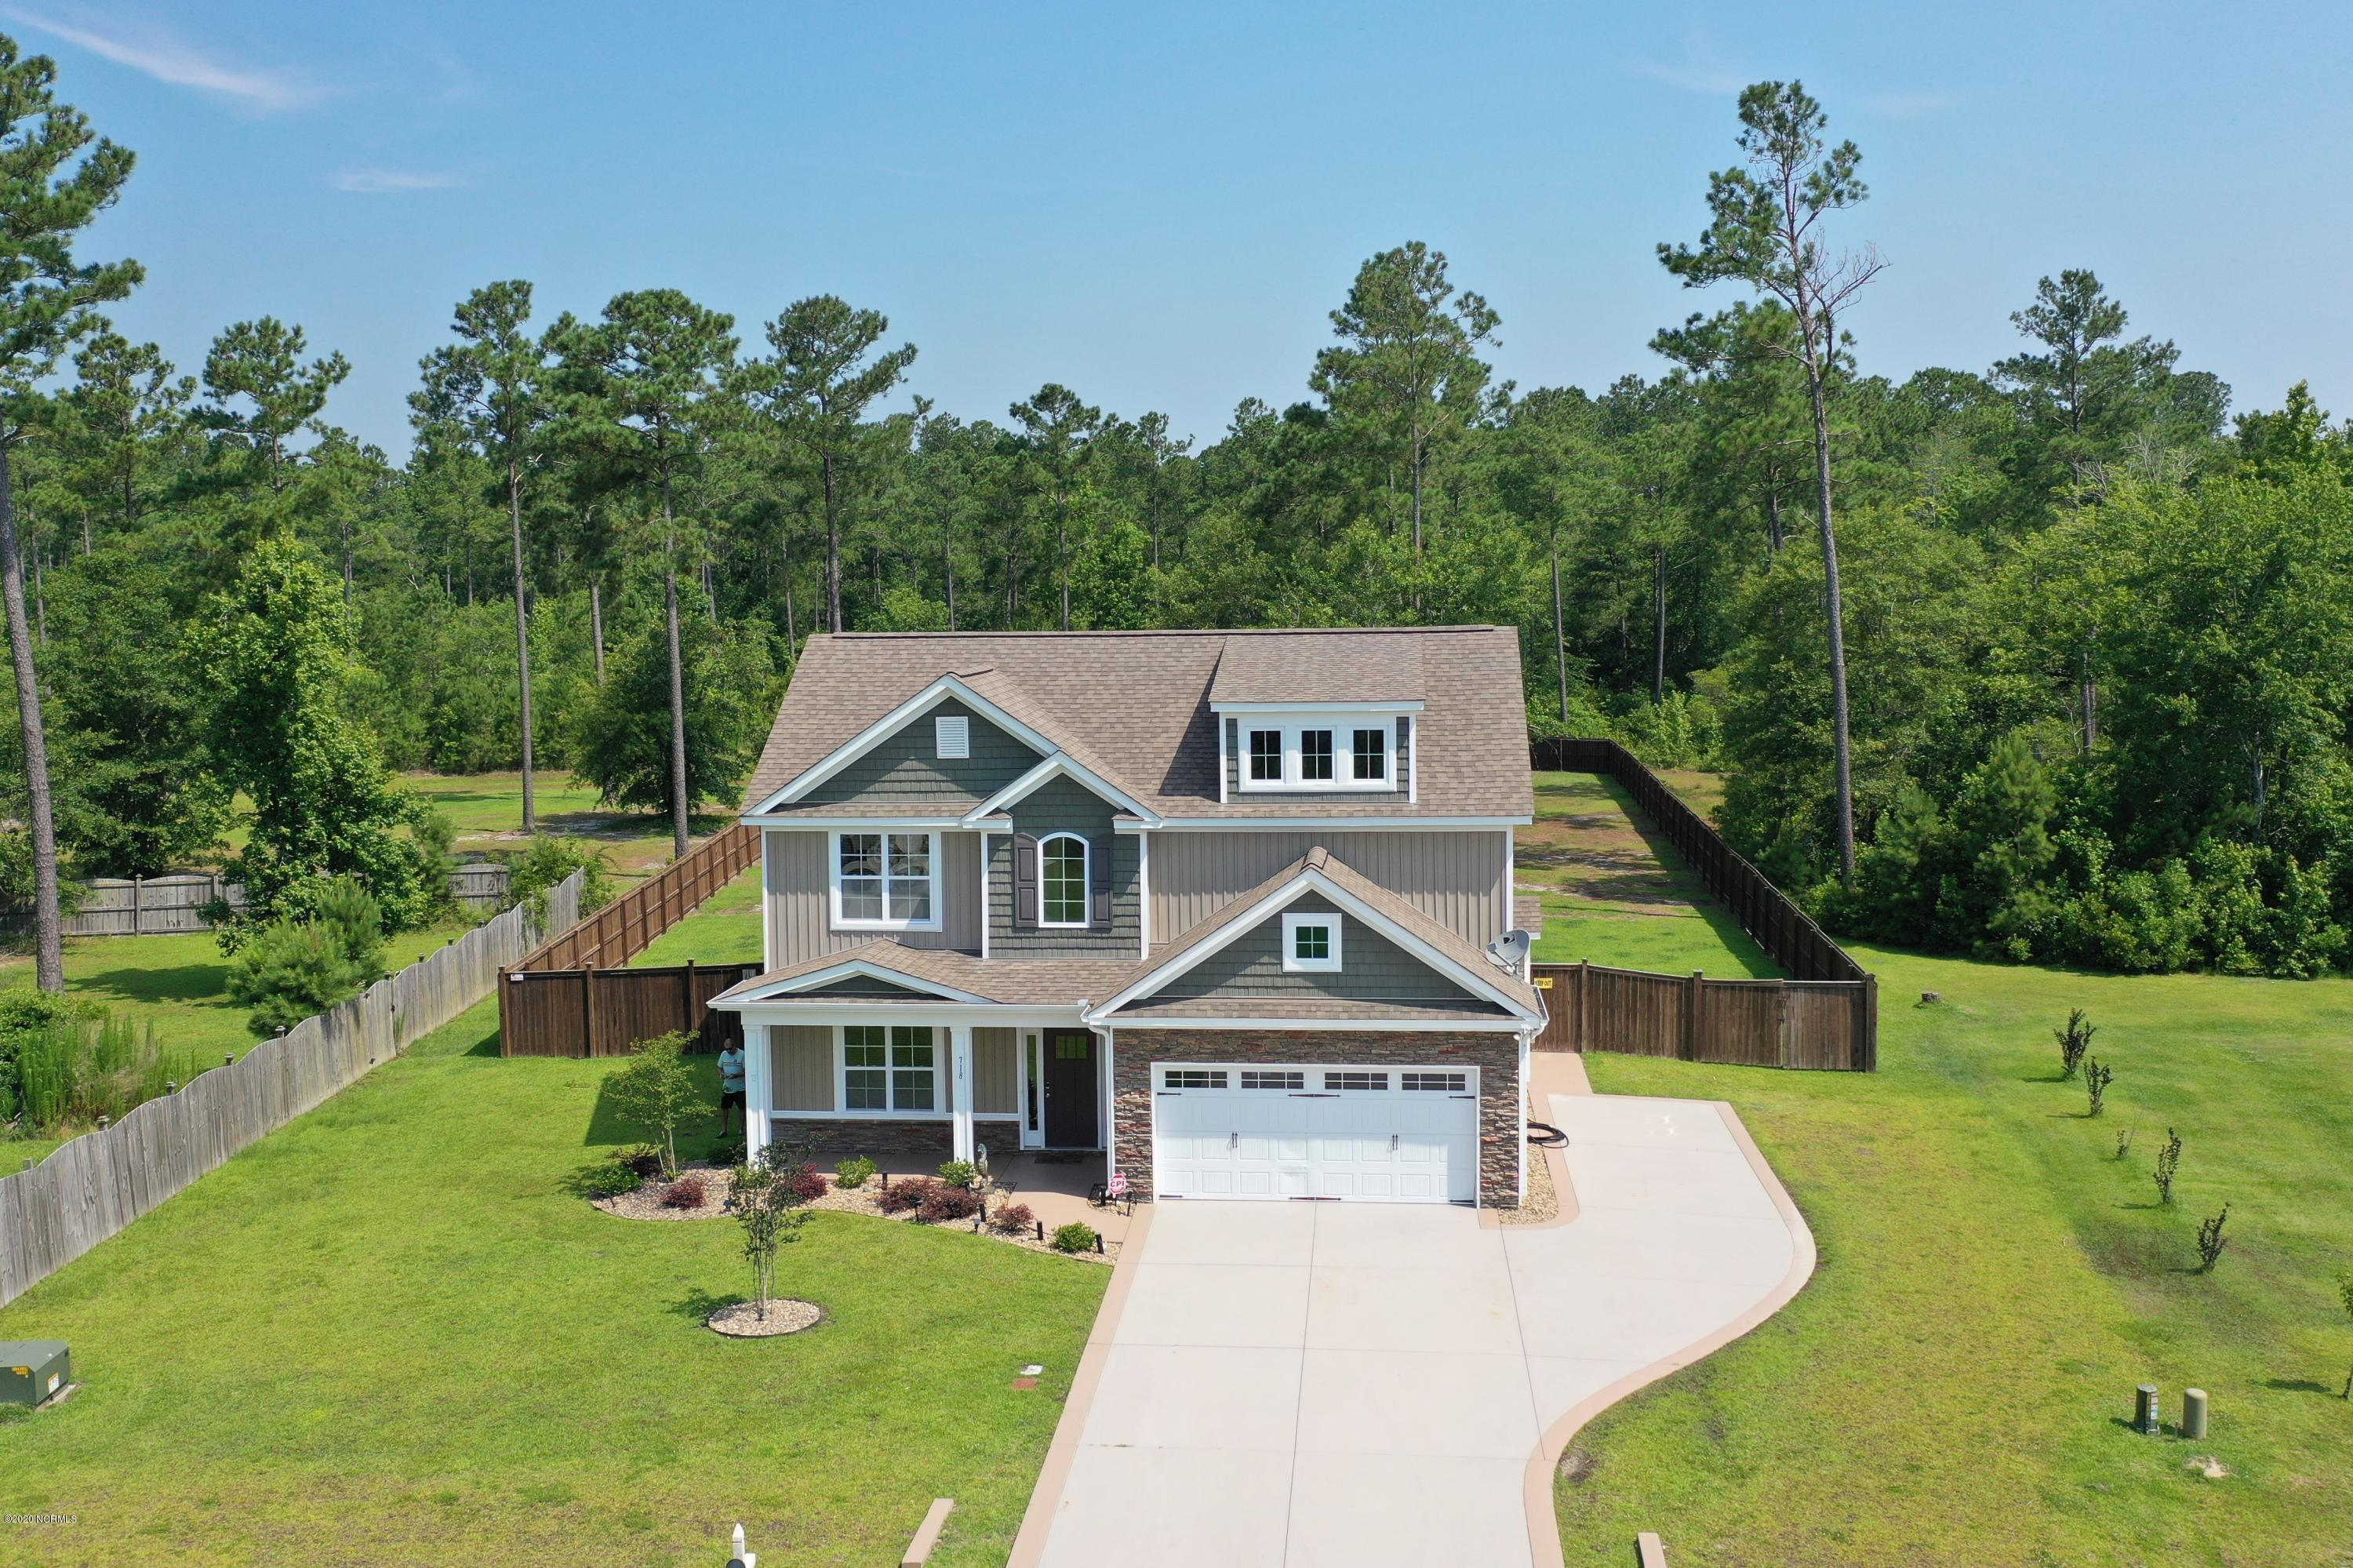 718 Southernwood Place, Hubert, North Carolina 28539, 4 Bedrooms Bedrooms, ,2 BathroomsBathrooms,Residential,For Sale,Southernwood,100223427